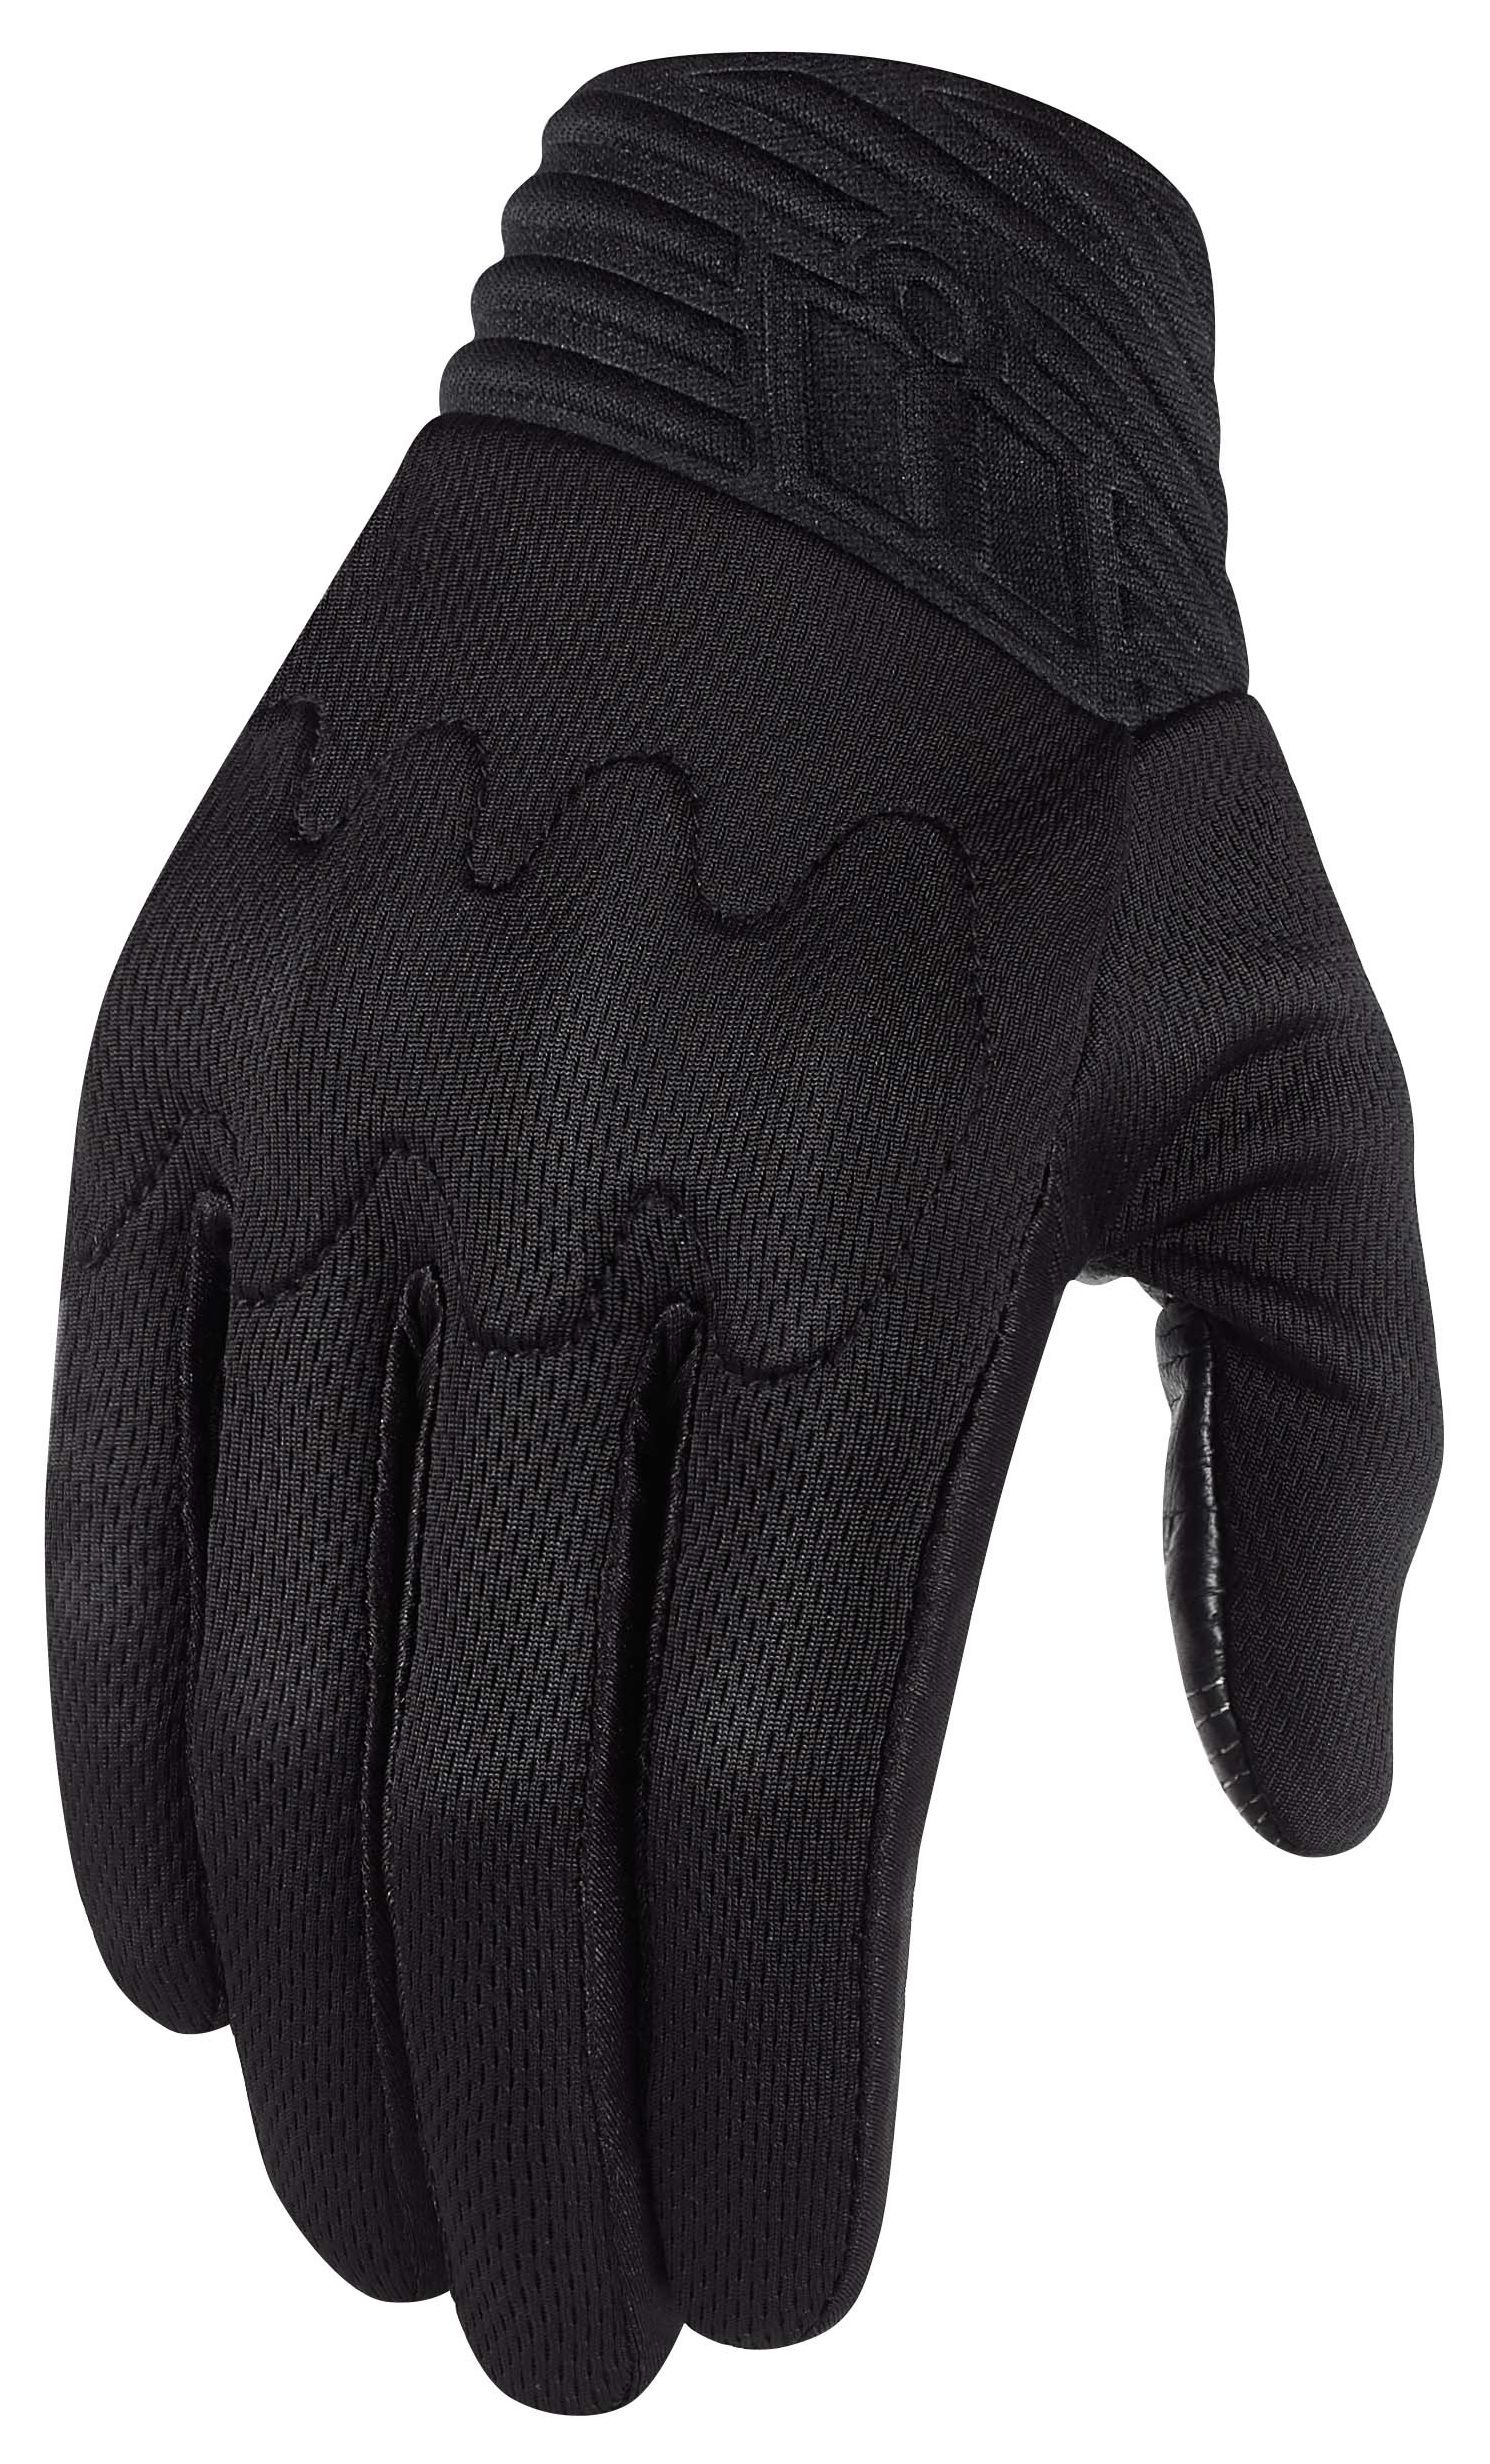 Mens sizes in gloves - Mens Sizes In Gloves 57